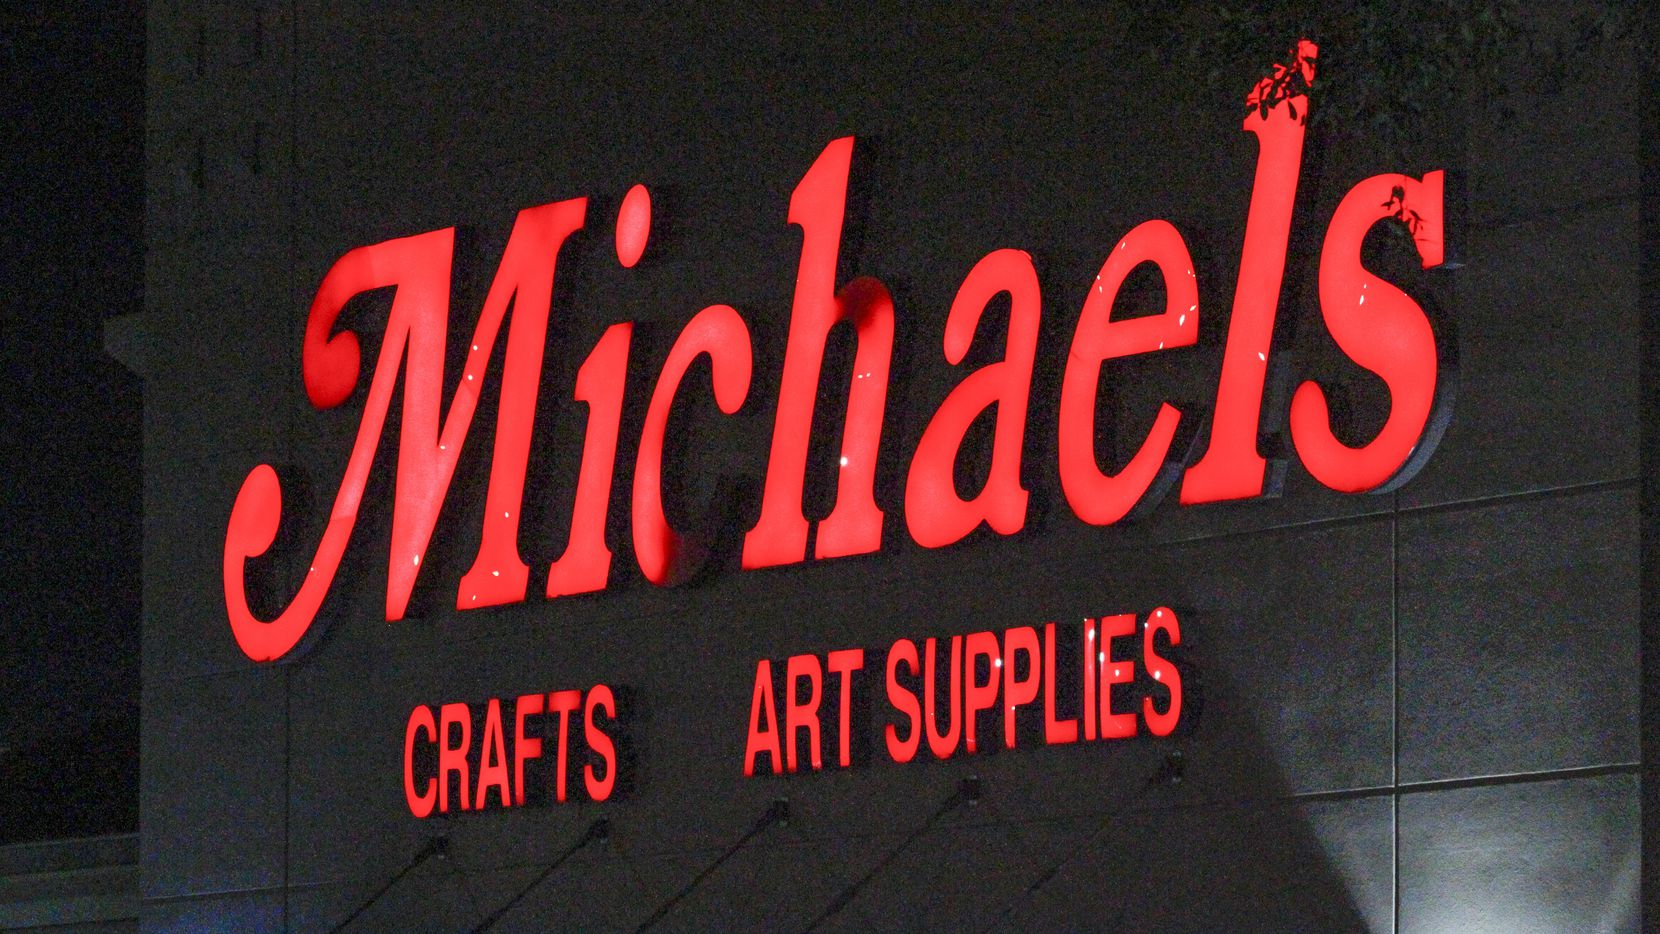 Irving-based Michaels operates 1,260 arts and crafts stores.